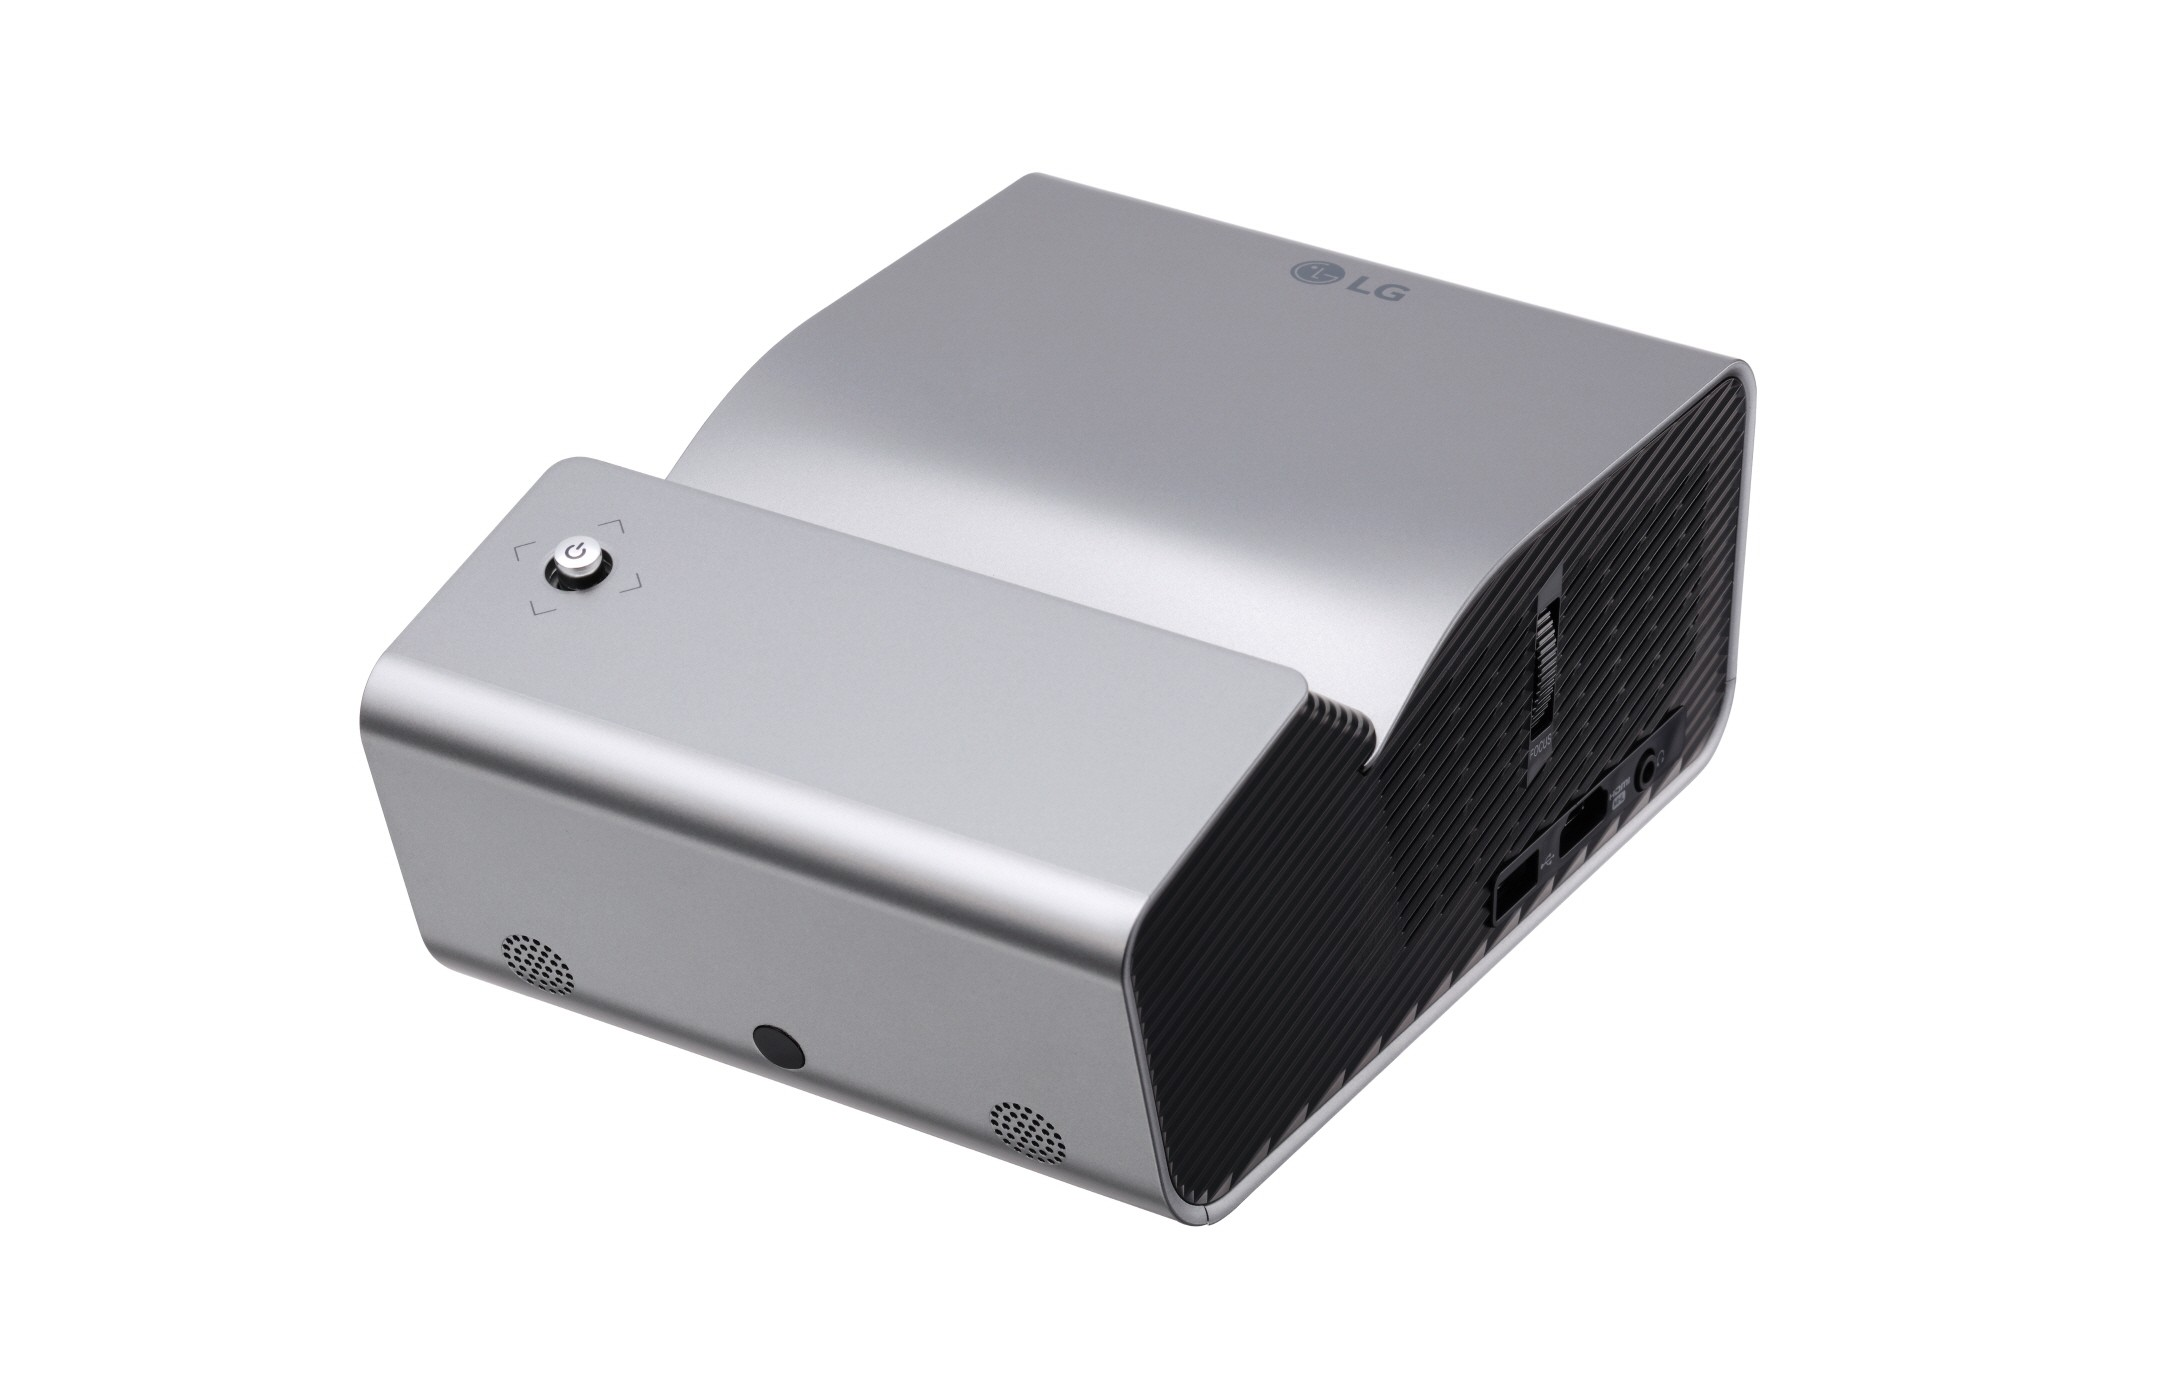 LG Minibeam projector model PH450U